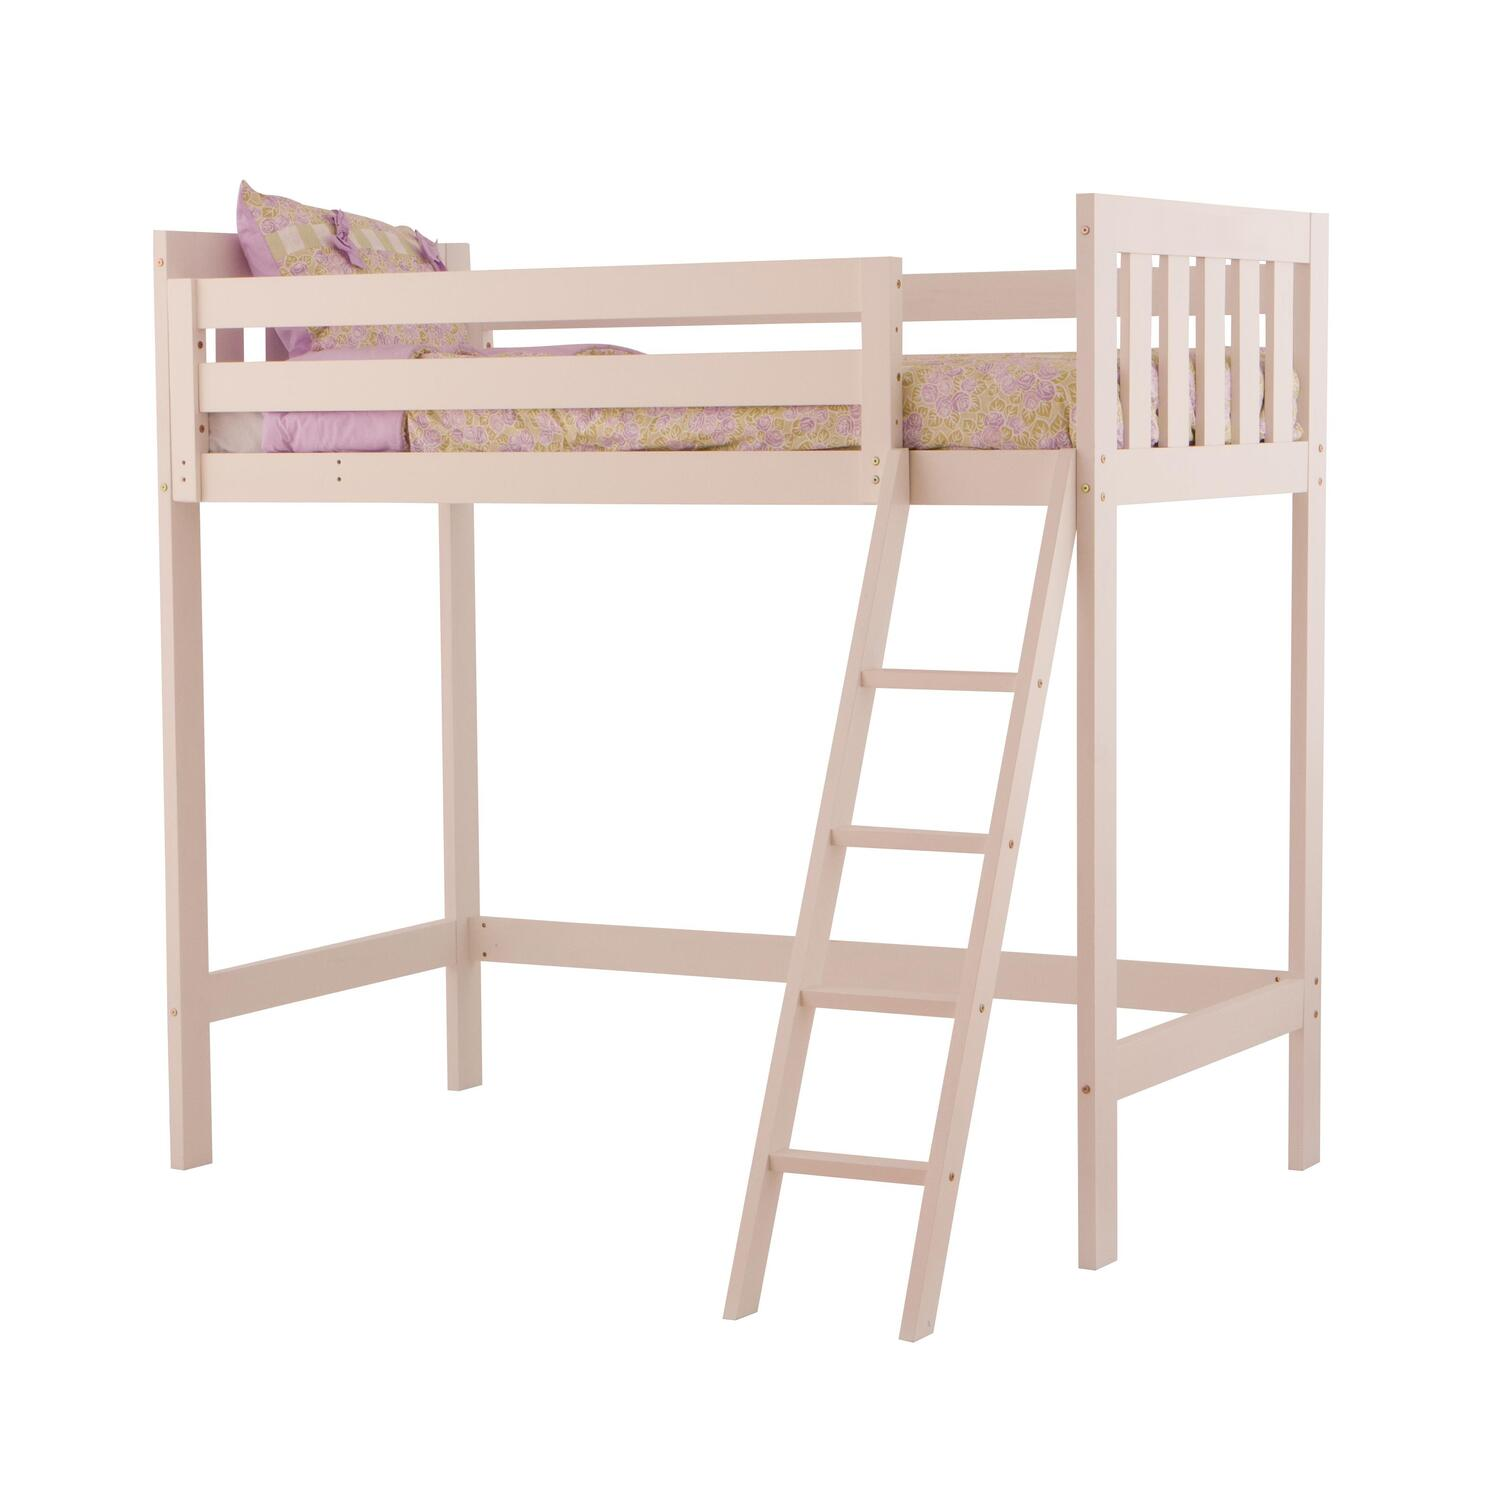 Canwood Canwood Alpine II Loft Bed by OJ Commerce $497.99